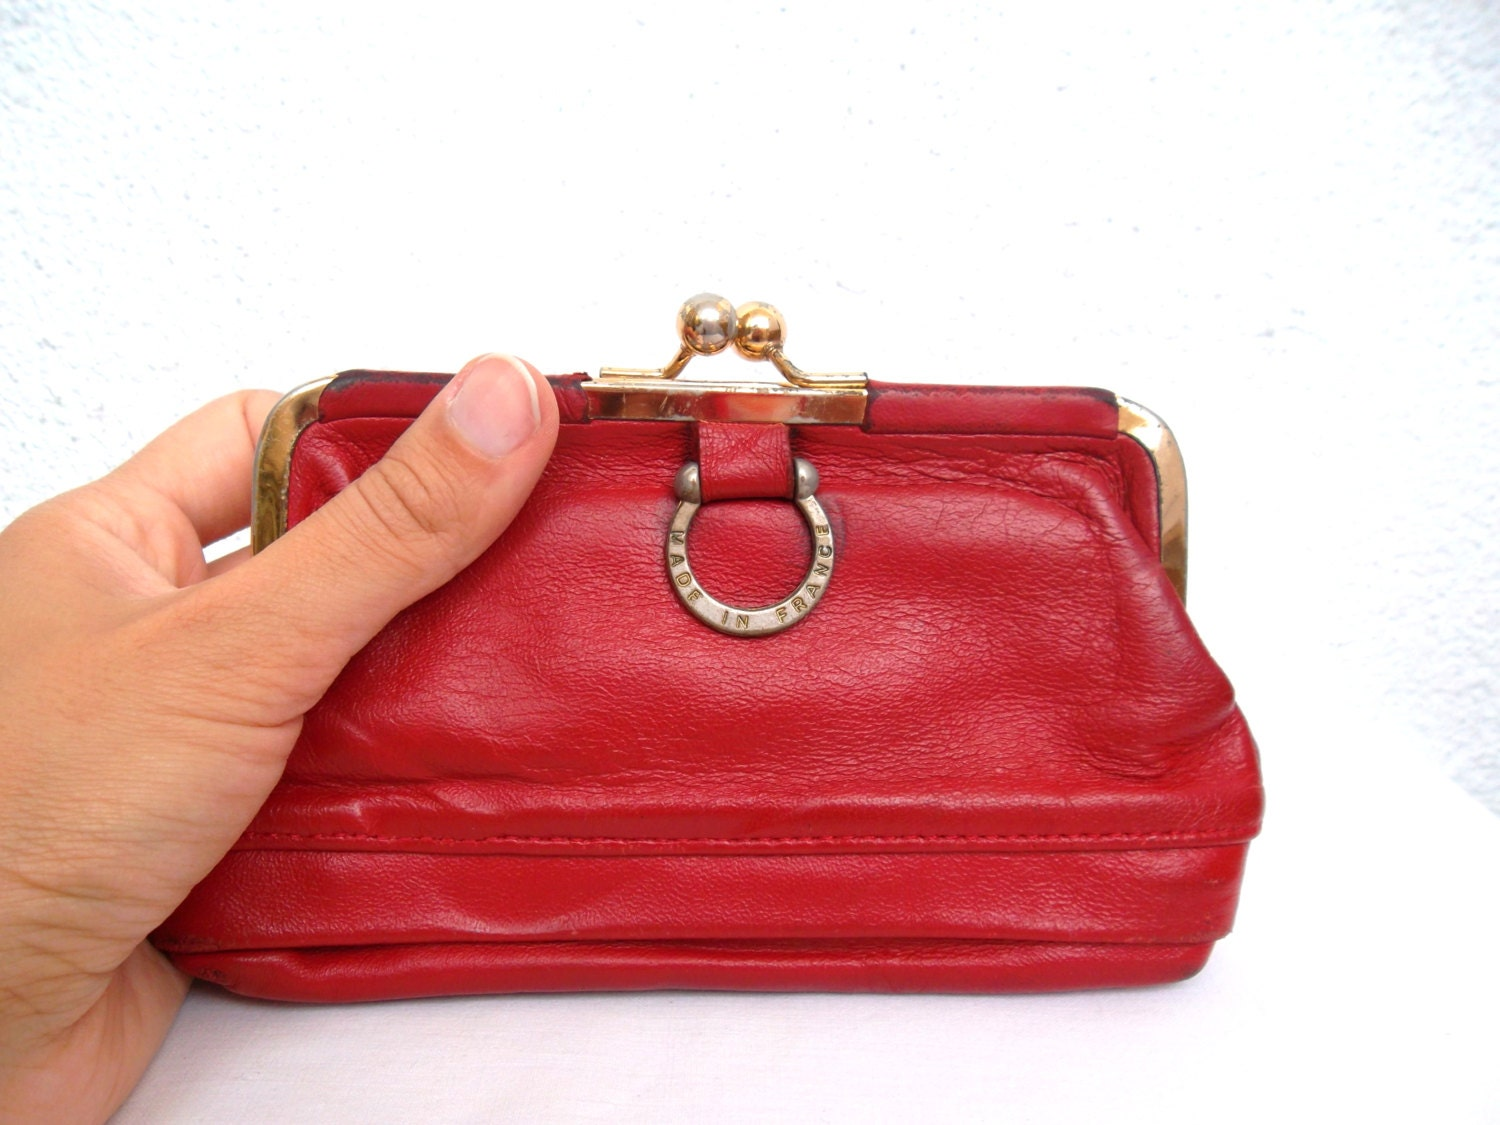 Red leather coin purse, French vintage purse, old  real leather money purse,  distressed genuine leather change purse, 80s lady red wallet - BlastFromThePastBags